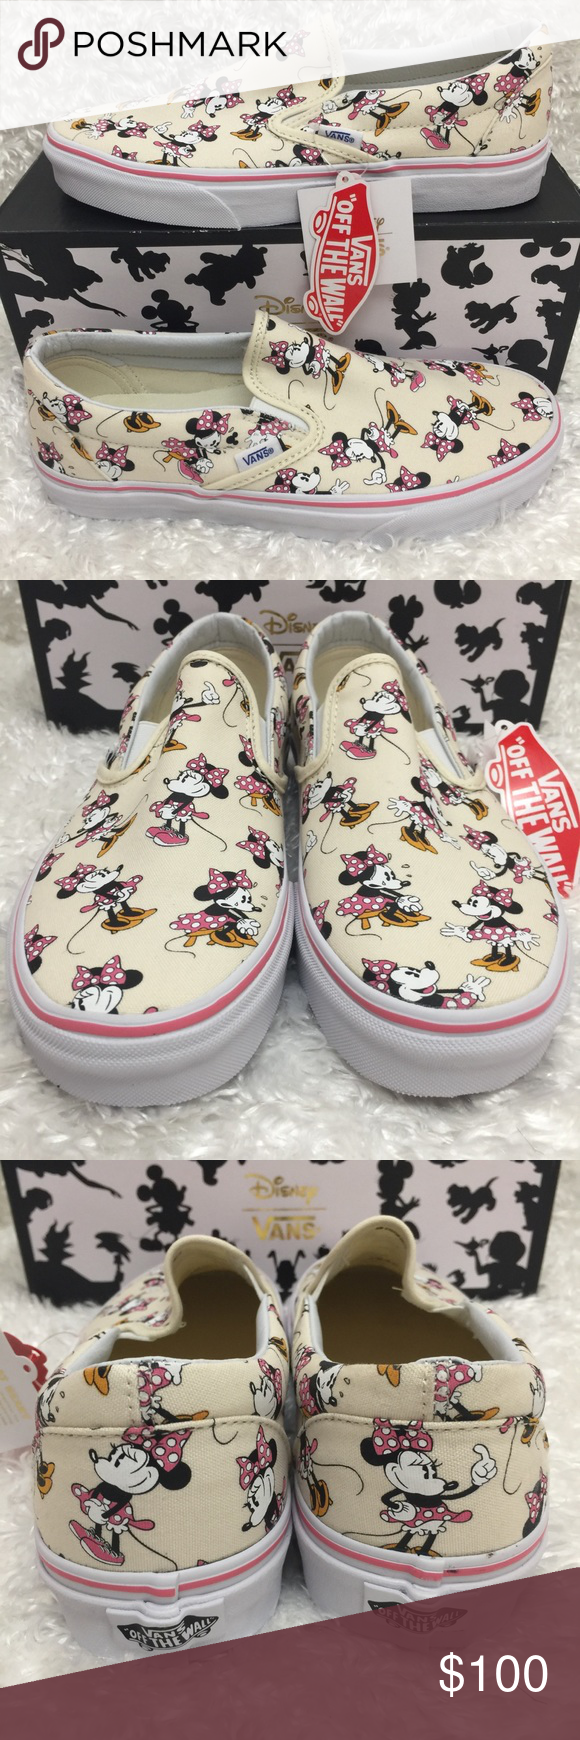 NEW Vans Classic Slip-On Minnie Mouse